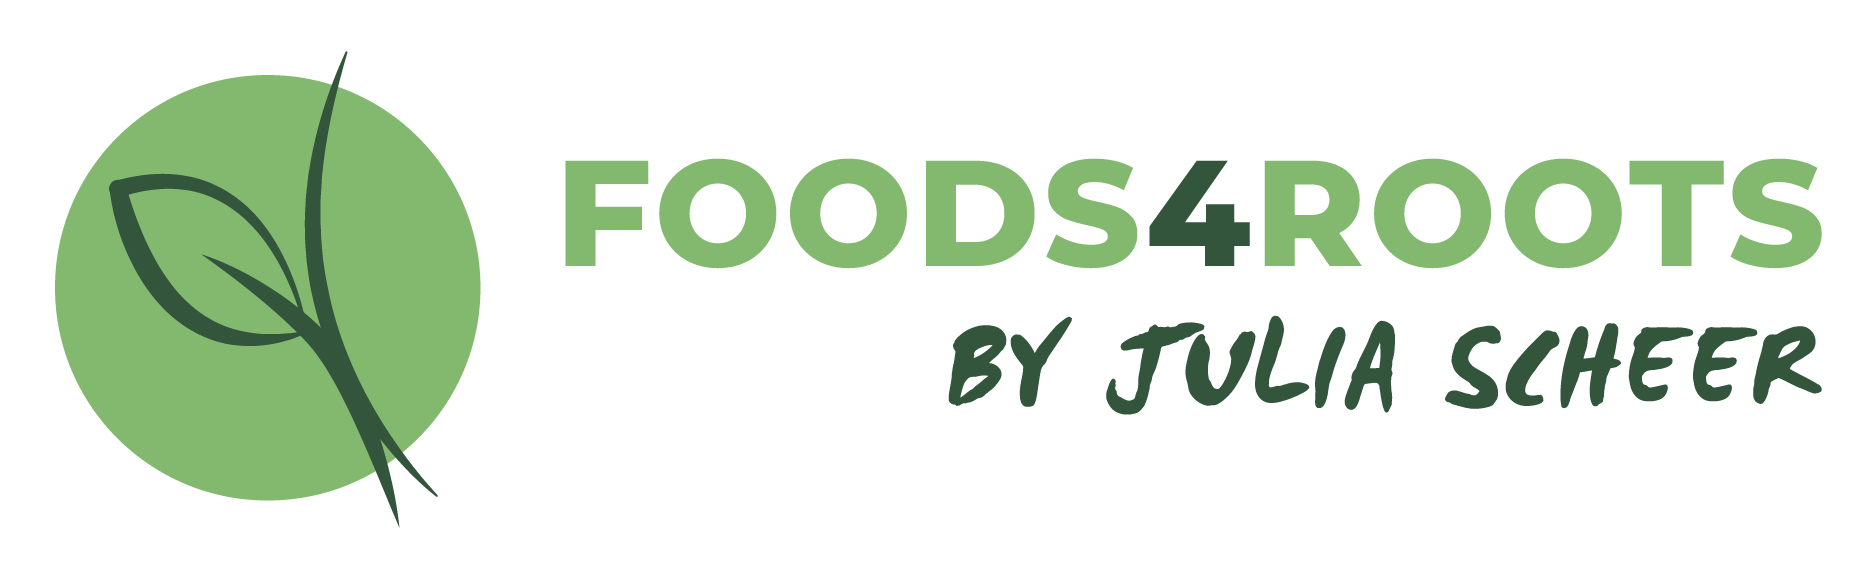 Foods4Roots